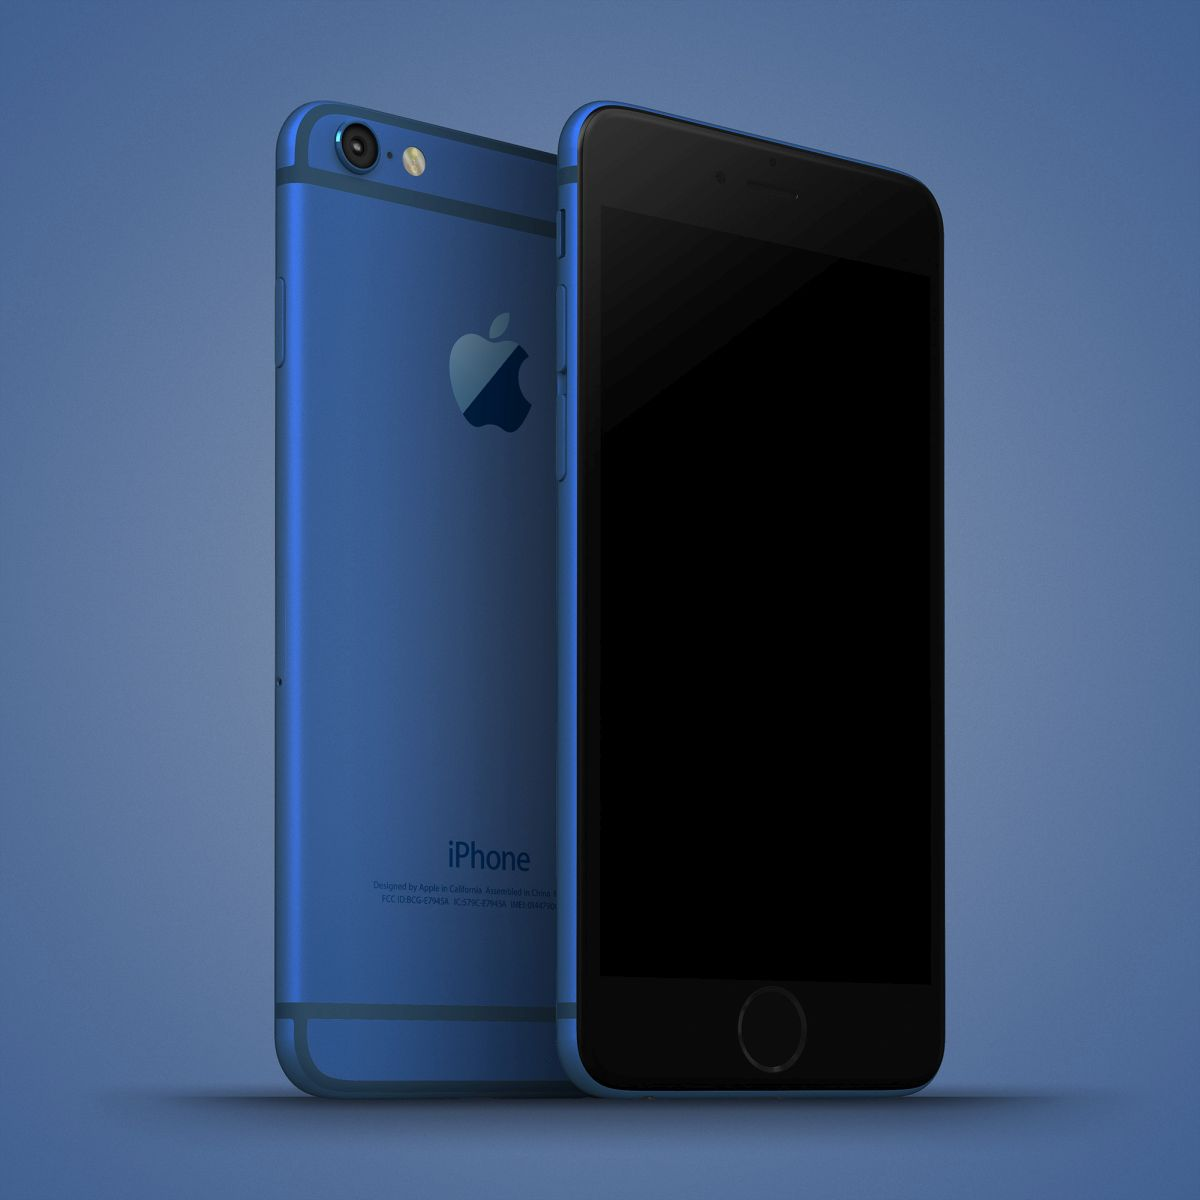 iPhone 6c 2016 Gets Fresh Mockups, Specs: 4 Inch Screen ...